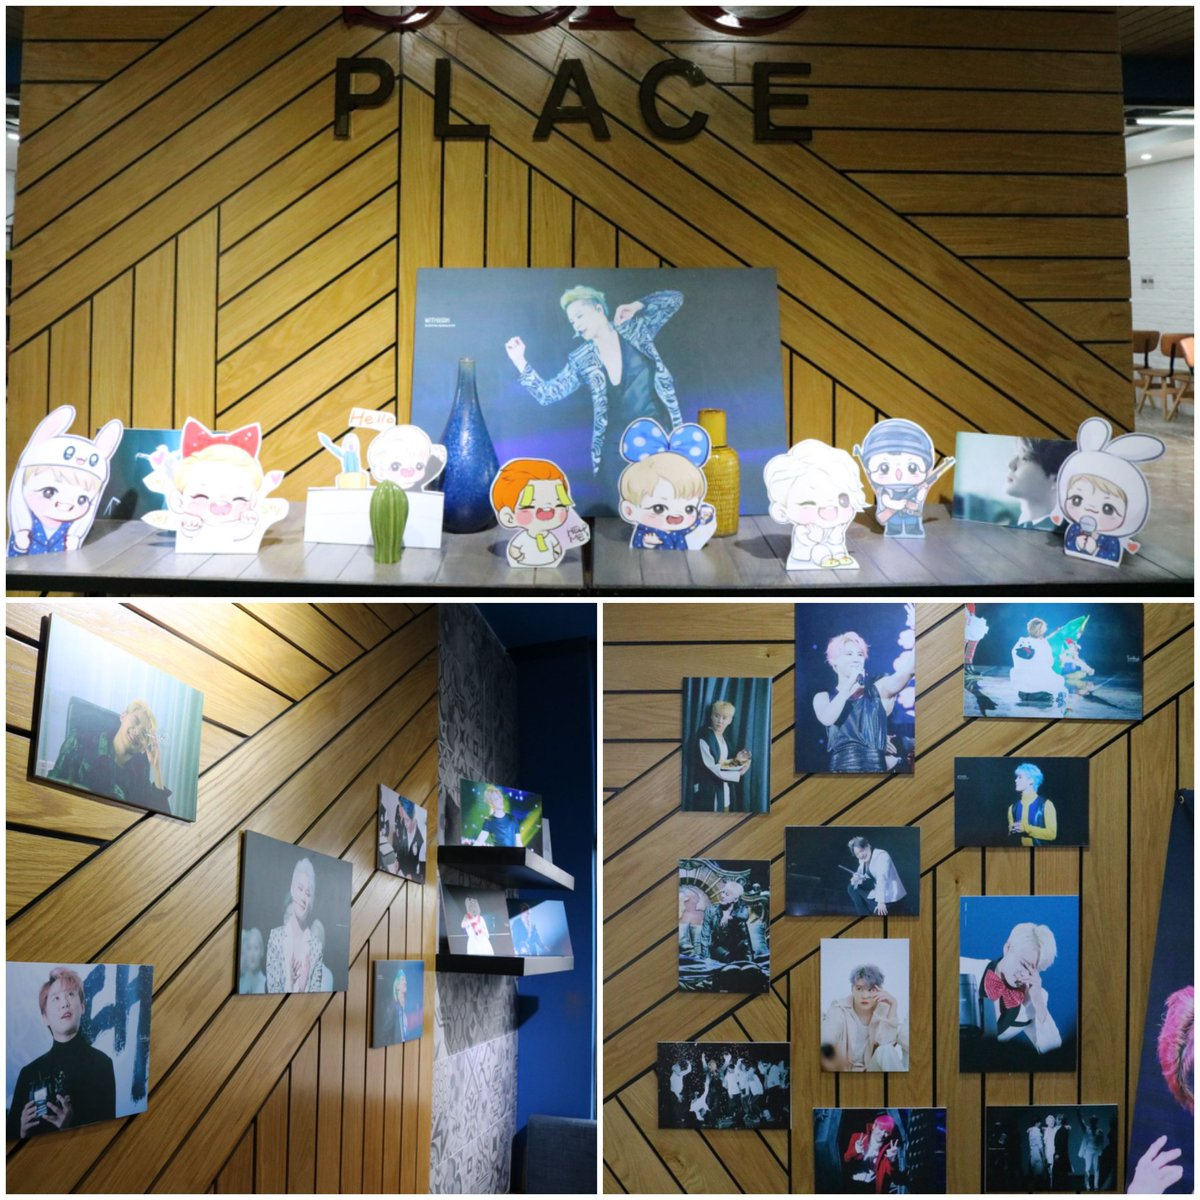 XIA JUNSU'S PHOTO EXHIBITION IN VIETNAM (free exhibition) Thanks for the support of: @Ohmyjun_com @_WithXIA @TwinklingJ_ @lucylallaice @NianStic @XIA_hjhj @LicenseToXIA  The exhibition included 300 photos and more than 100 fans have attended. Thank you very much ^^